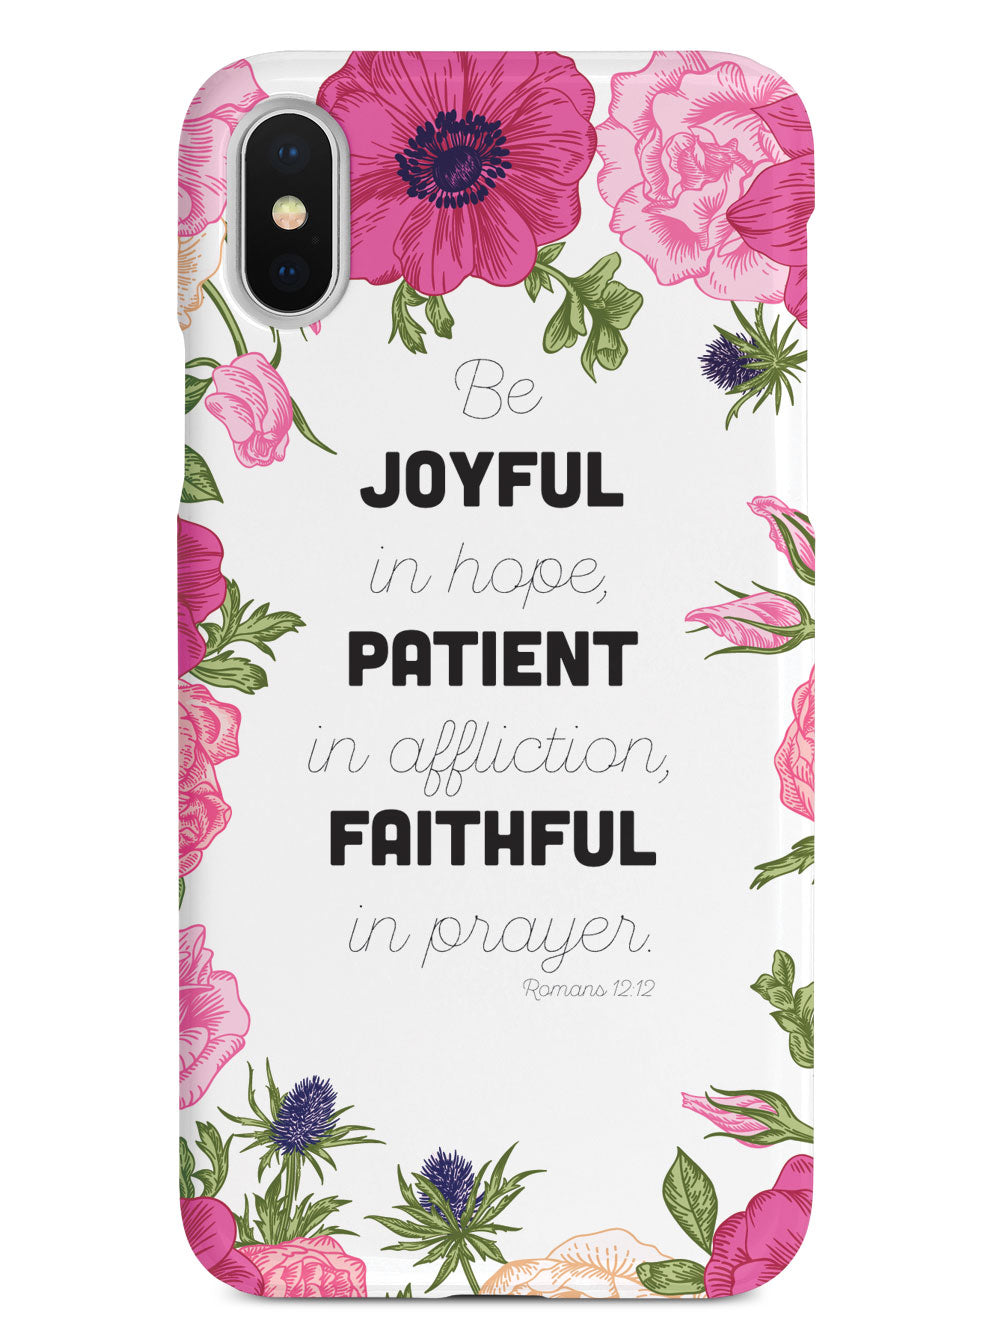 Romans 12:12 - Bible Verse - White Case